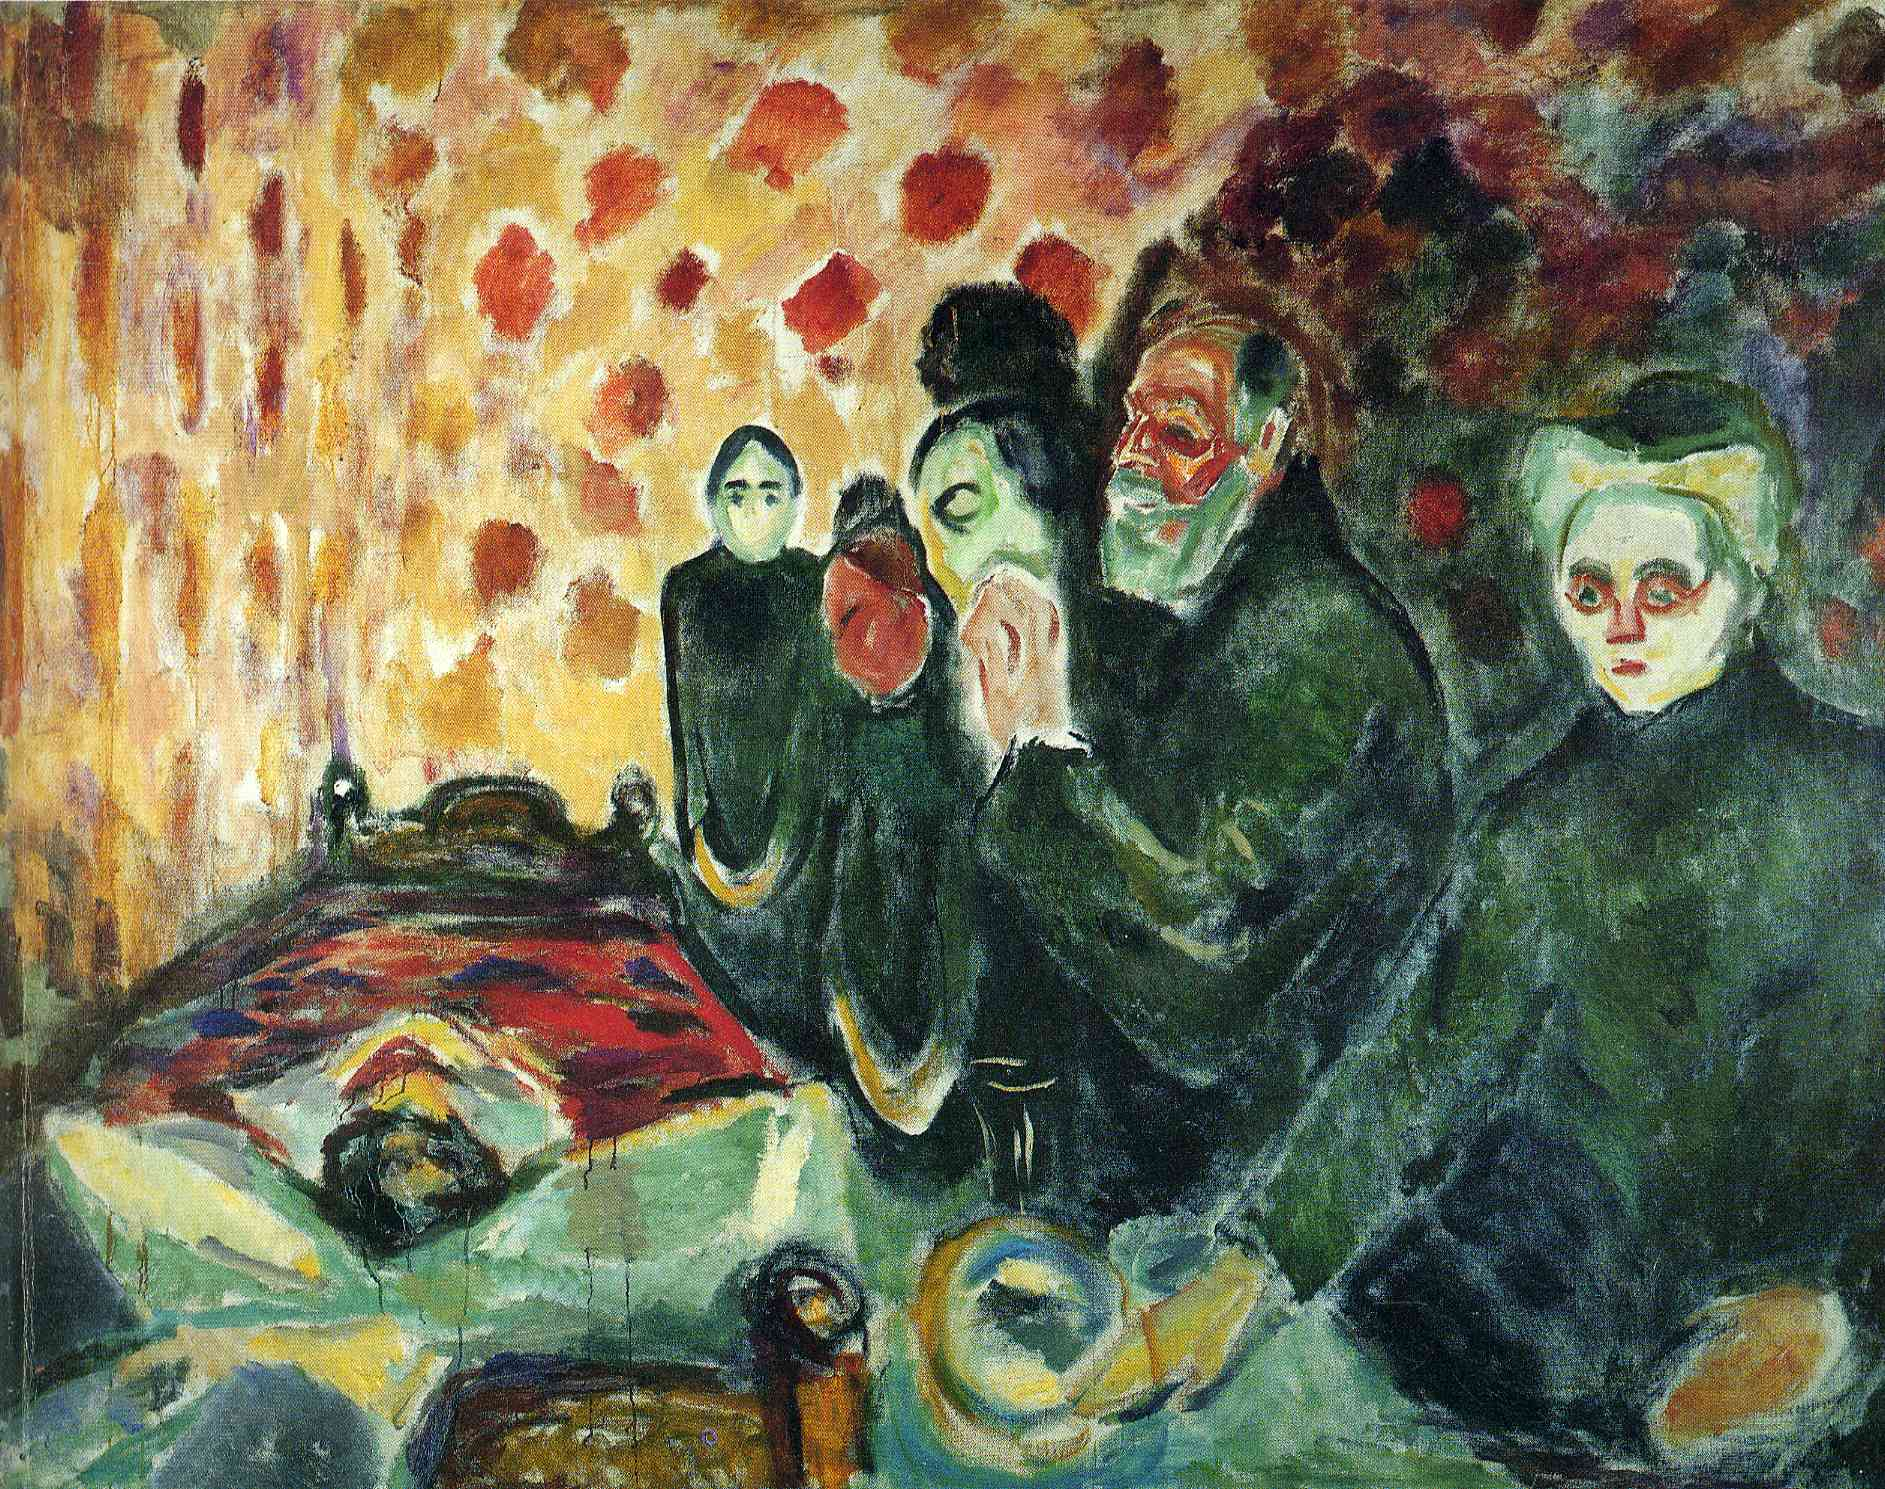 By the Deathbed (Fever) I, 1915 - Edvard Munch - WikiArt.org